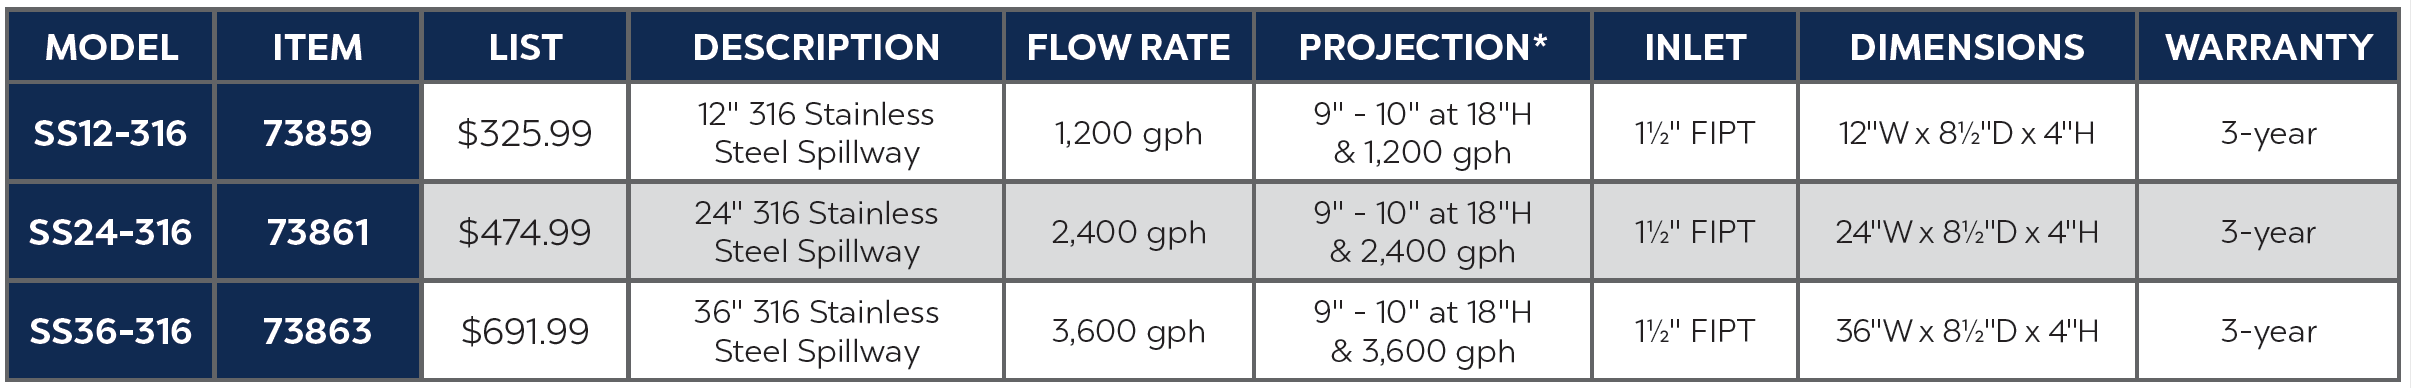 Stainless Steel 316 Spillway Specs